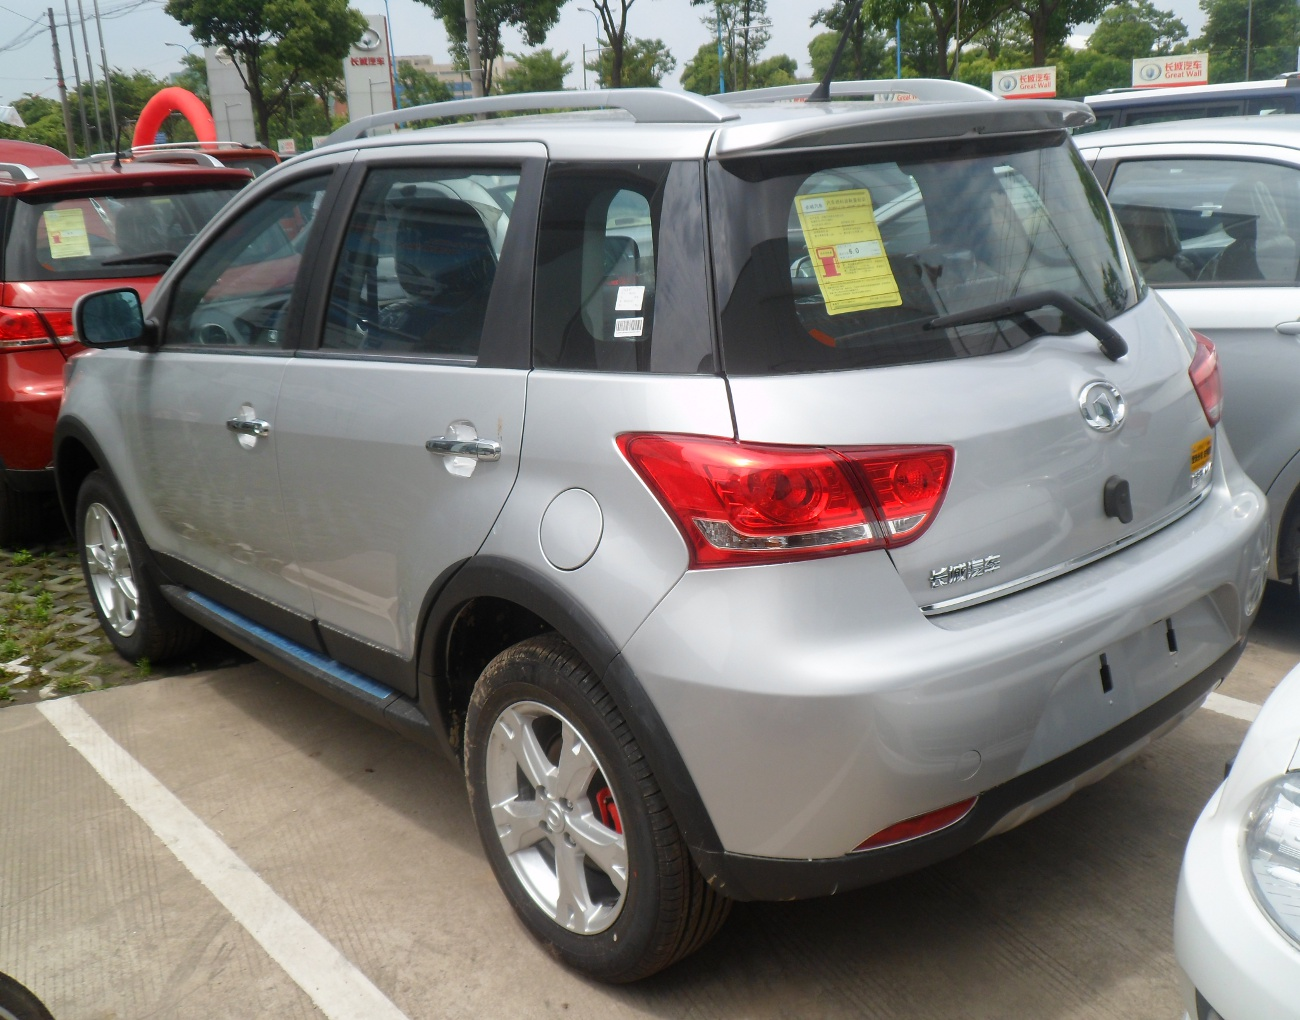 Description great wall haval m4 002 china 2012 06 02